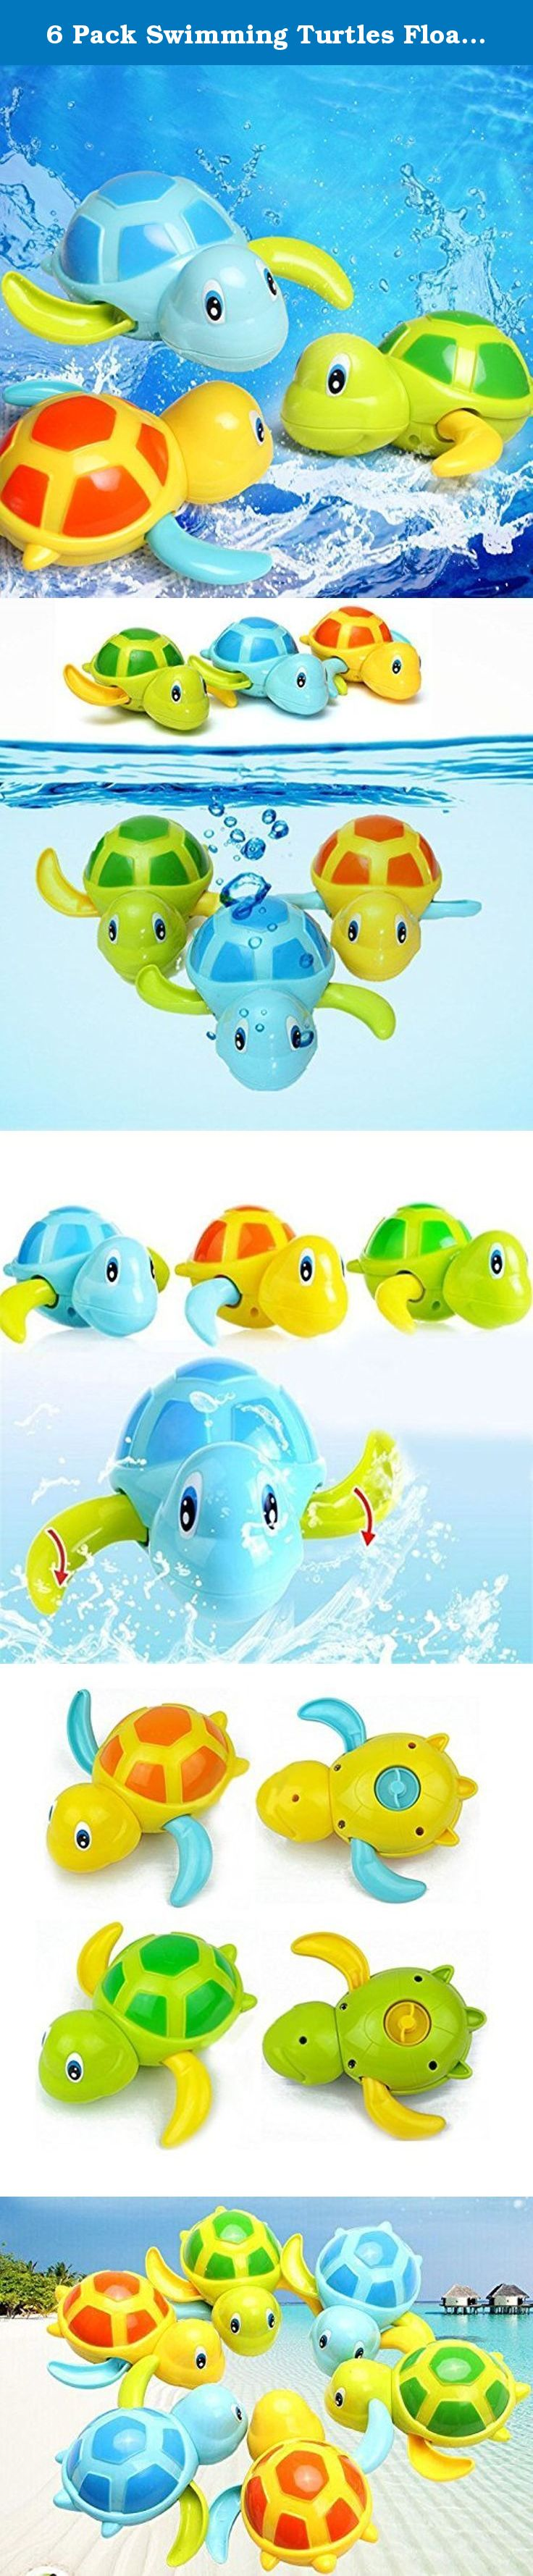 6 Pack Swimming Turtles Floating Wind Up Bath Water Toy Party